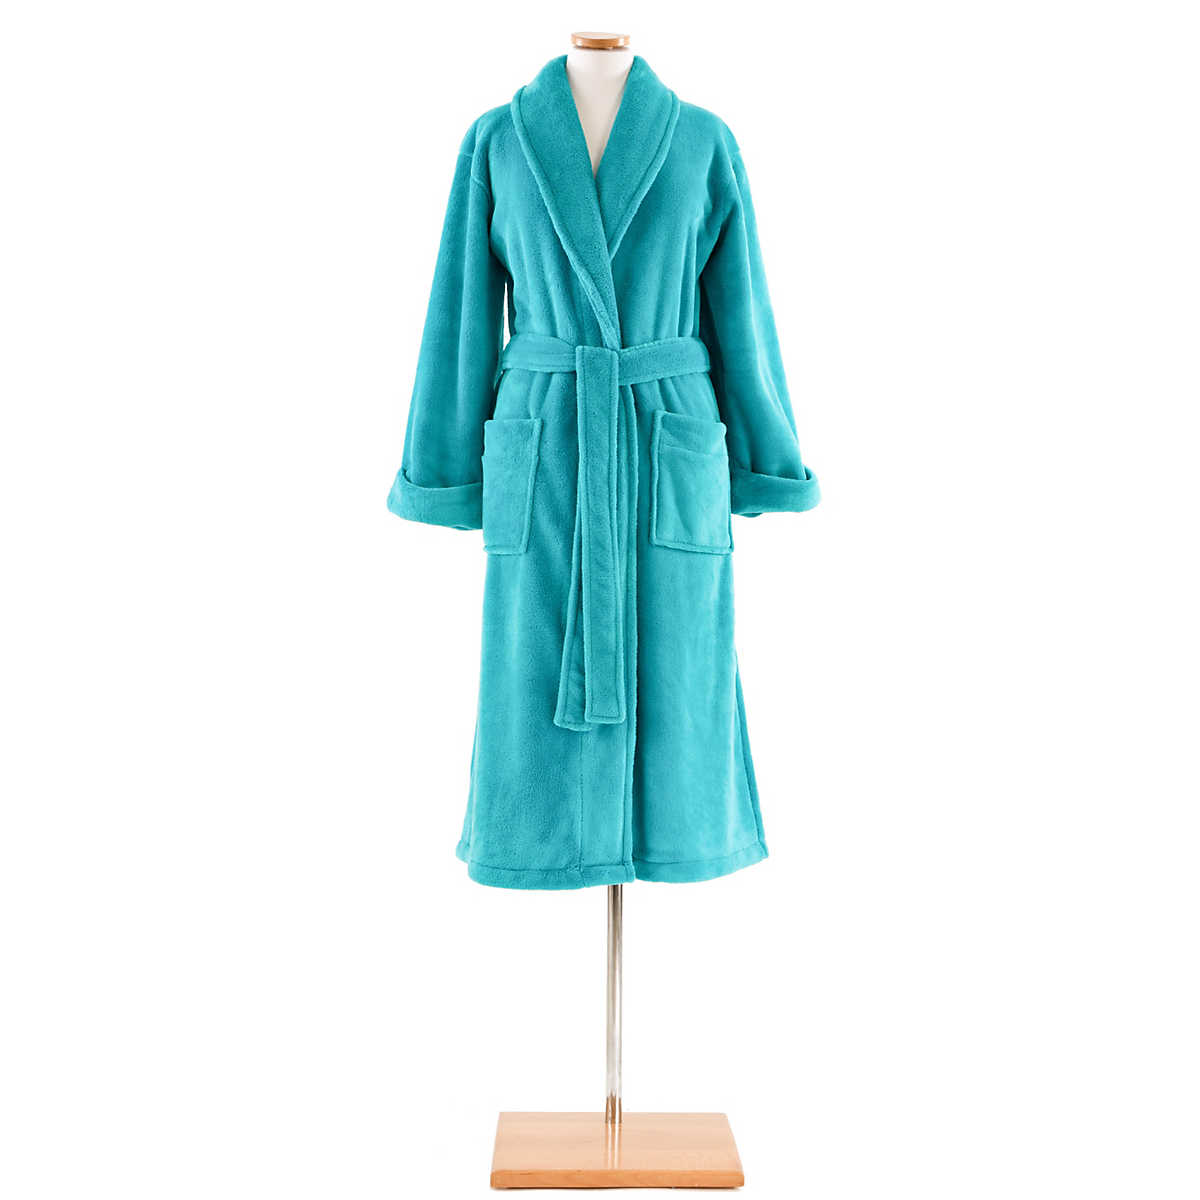 Sheepy Fleece Aqua Robe : Pine Cone Hill